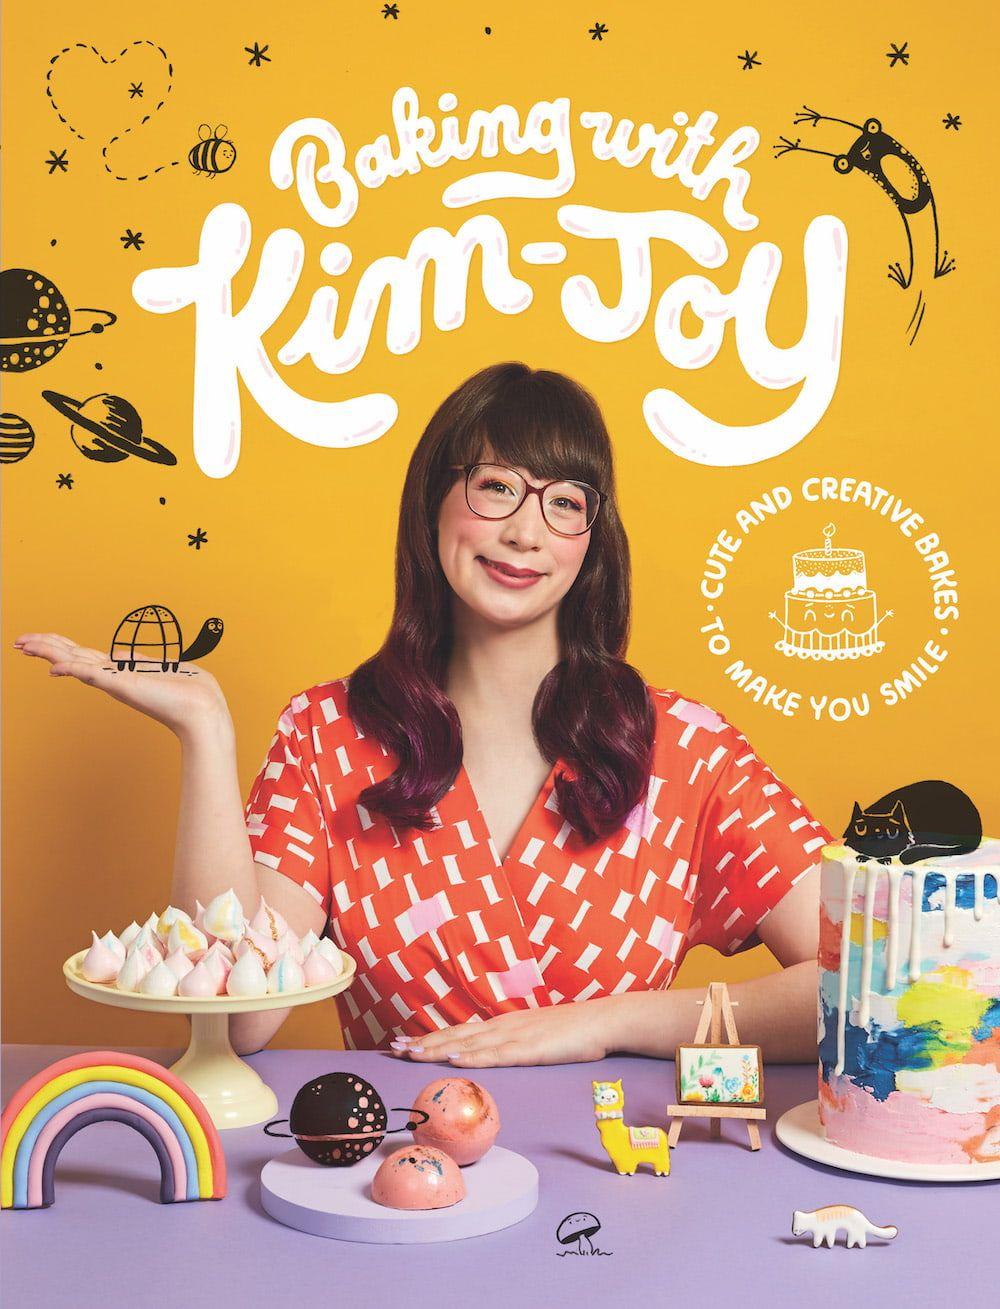 Baking with Kim-Joy book cover